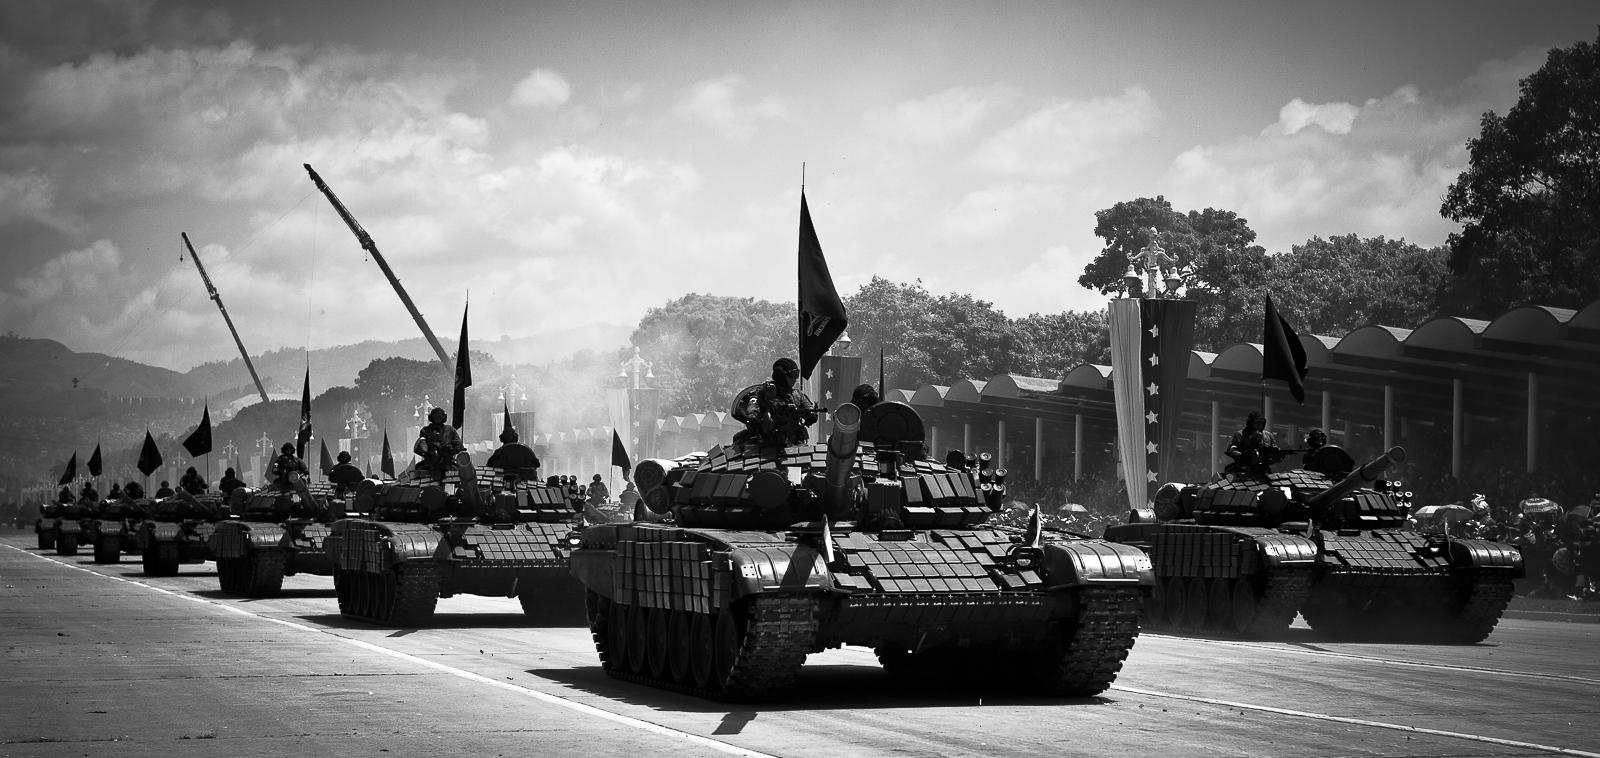 Military tanks parade at Los Proceres Boulevard in Caracas during the celebration of the 200 th anniversary of independence from Spain, 5 th July 2011. President Hugo Chávez missed the celebrations after announcing days before that he had cancer. Venezuela society has become more militarized since Hugo Chávez, a Paratrooper Commander, took office in 1999.